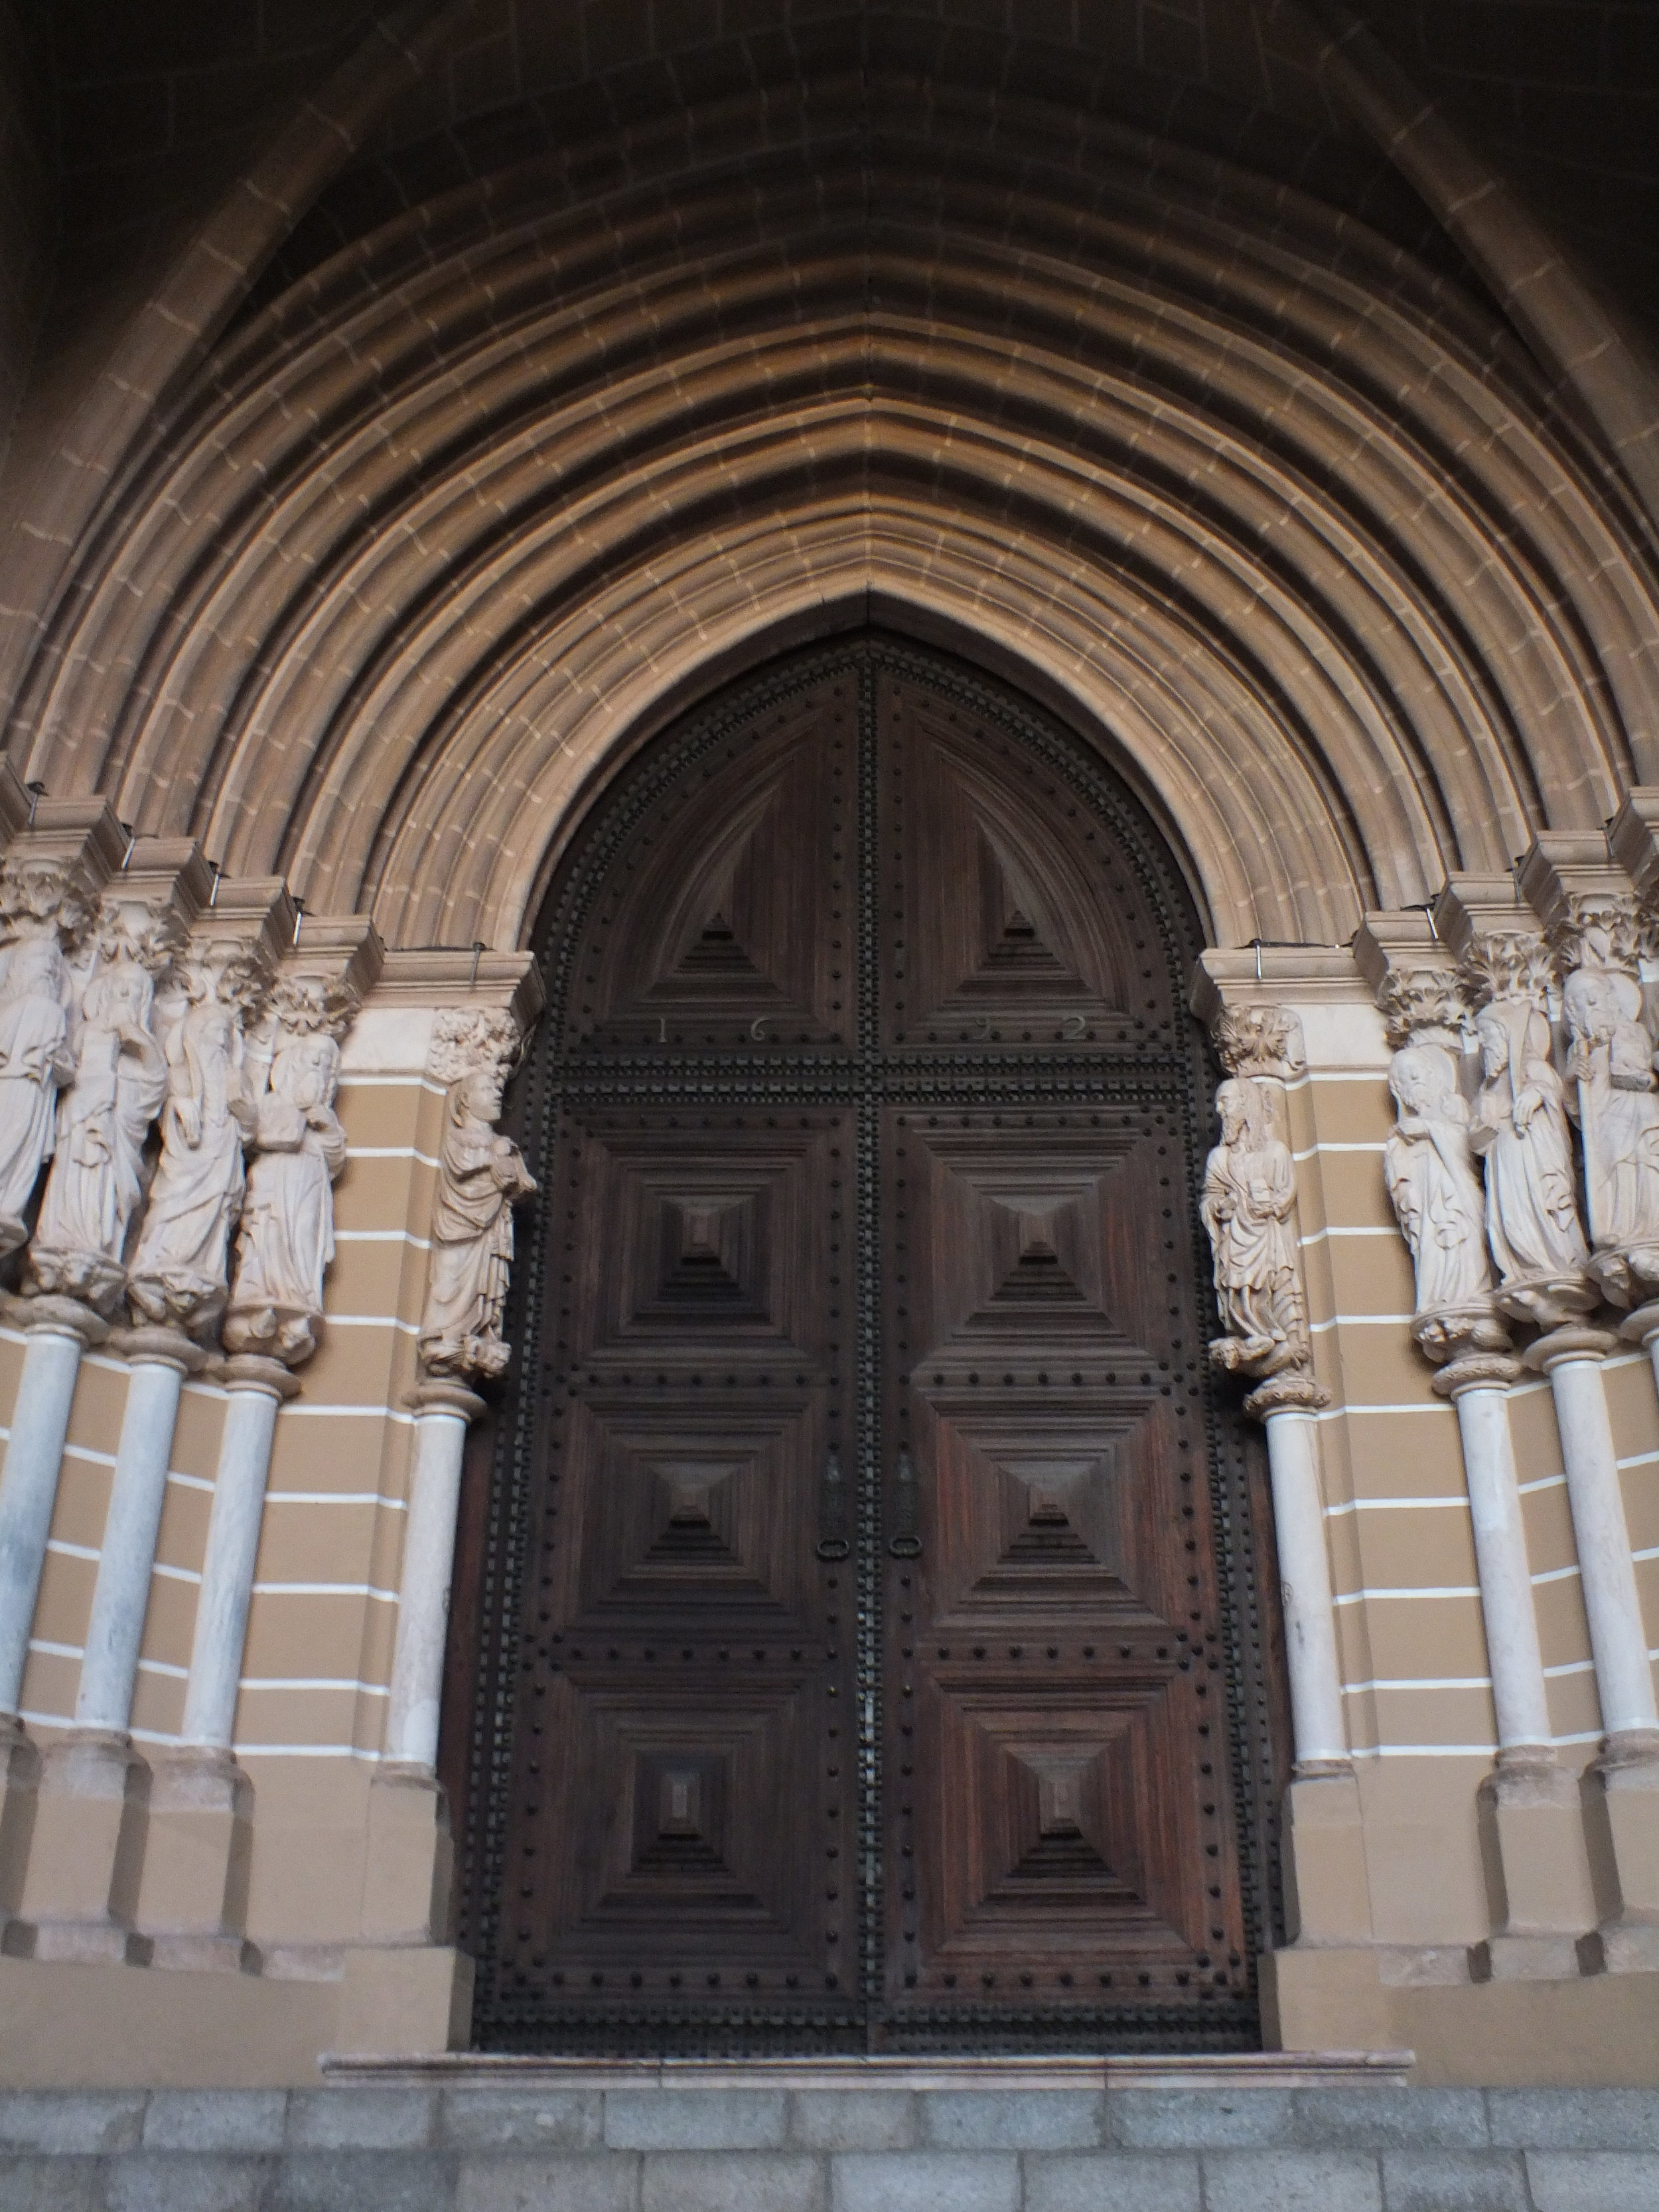 Portal to the Cathédral of Évora